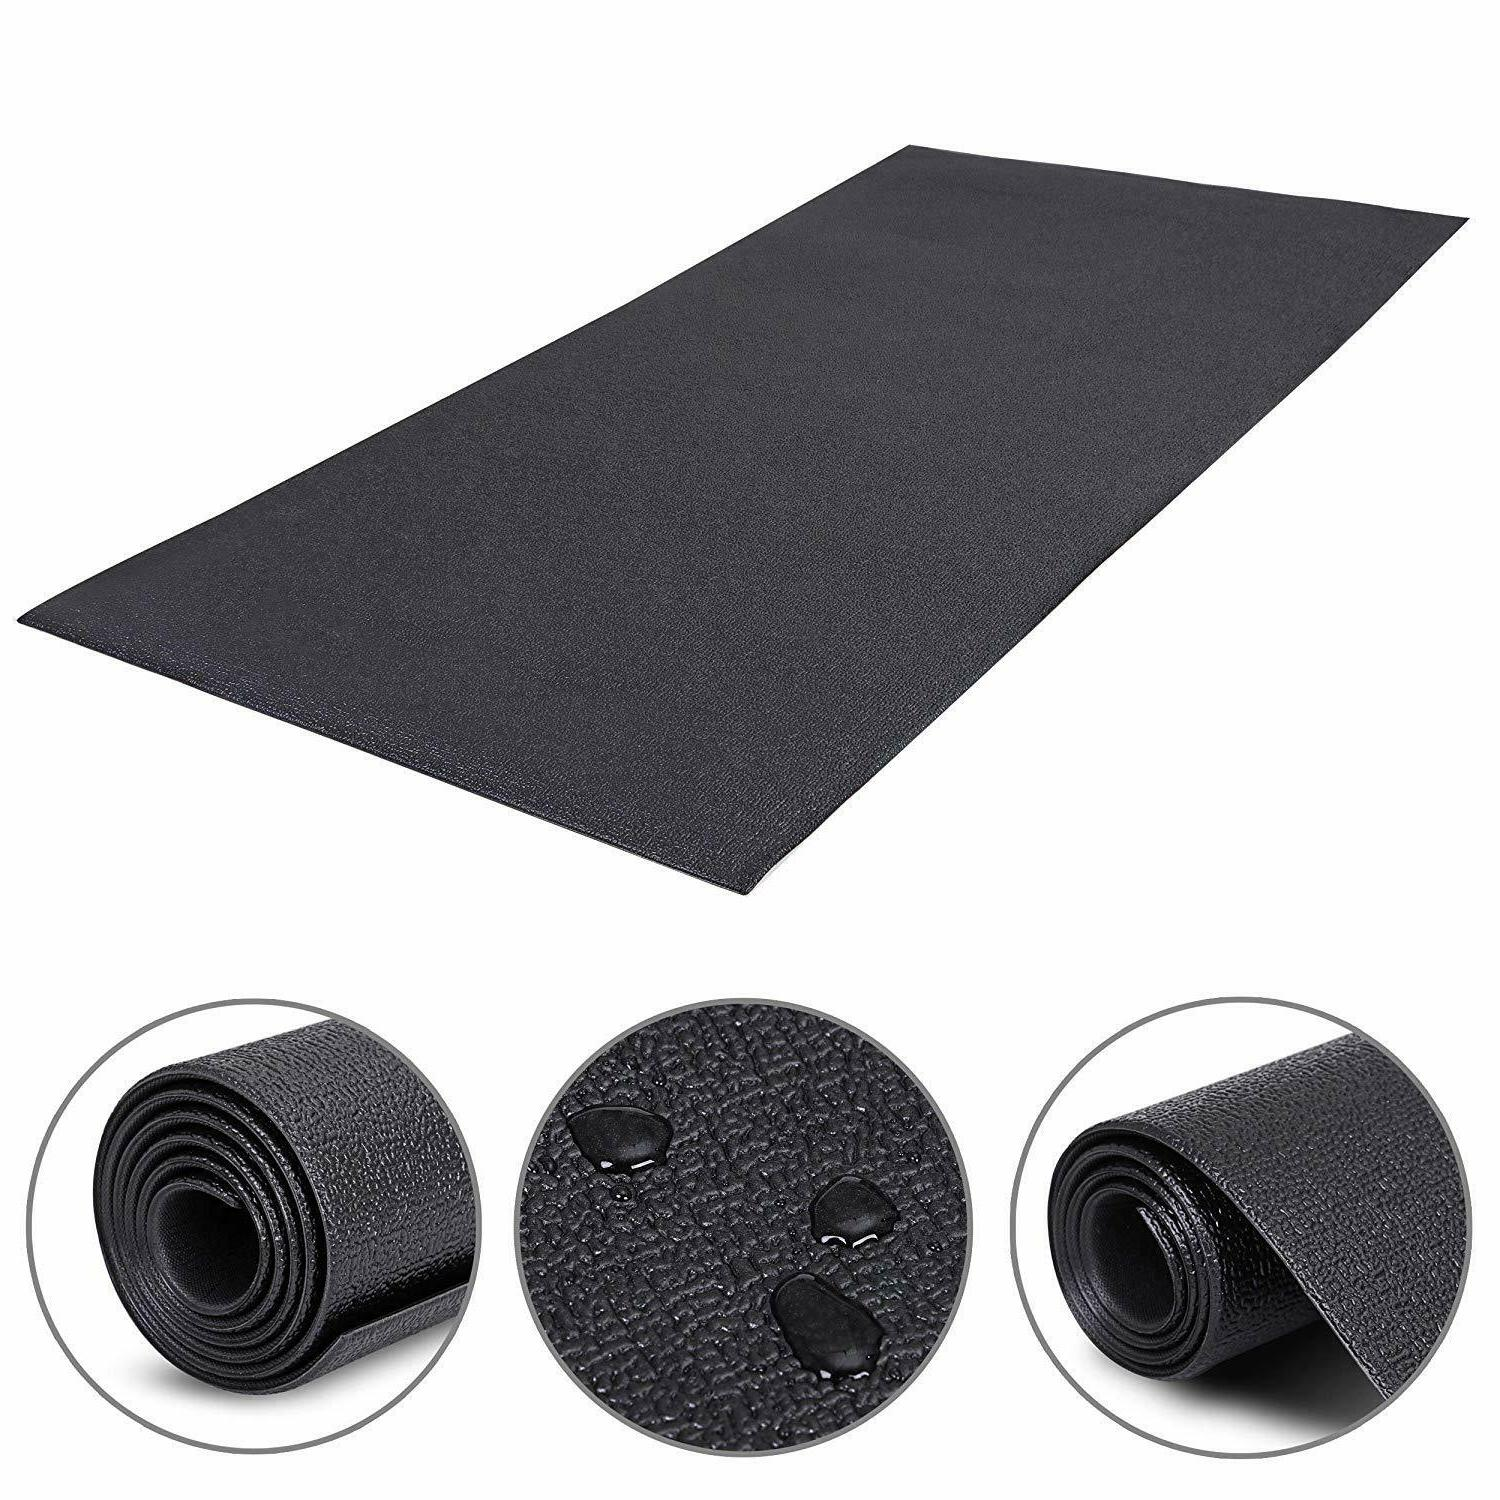 2 5x 5 exercise equipment mat gym